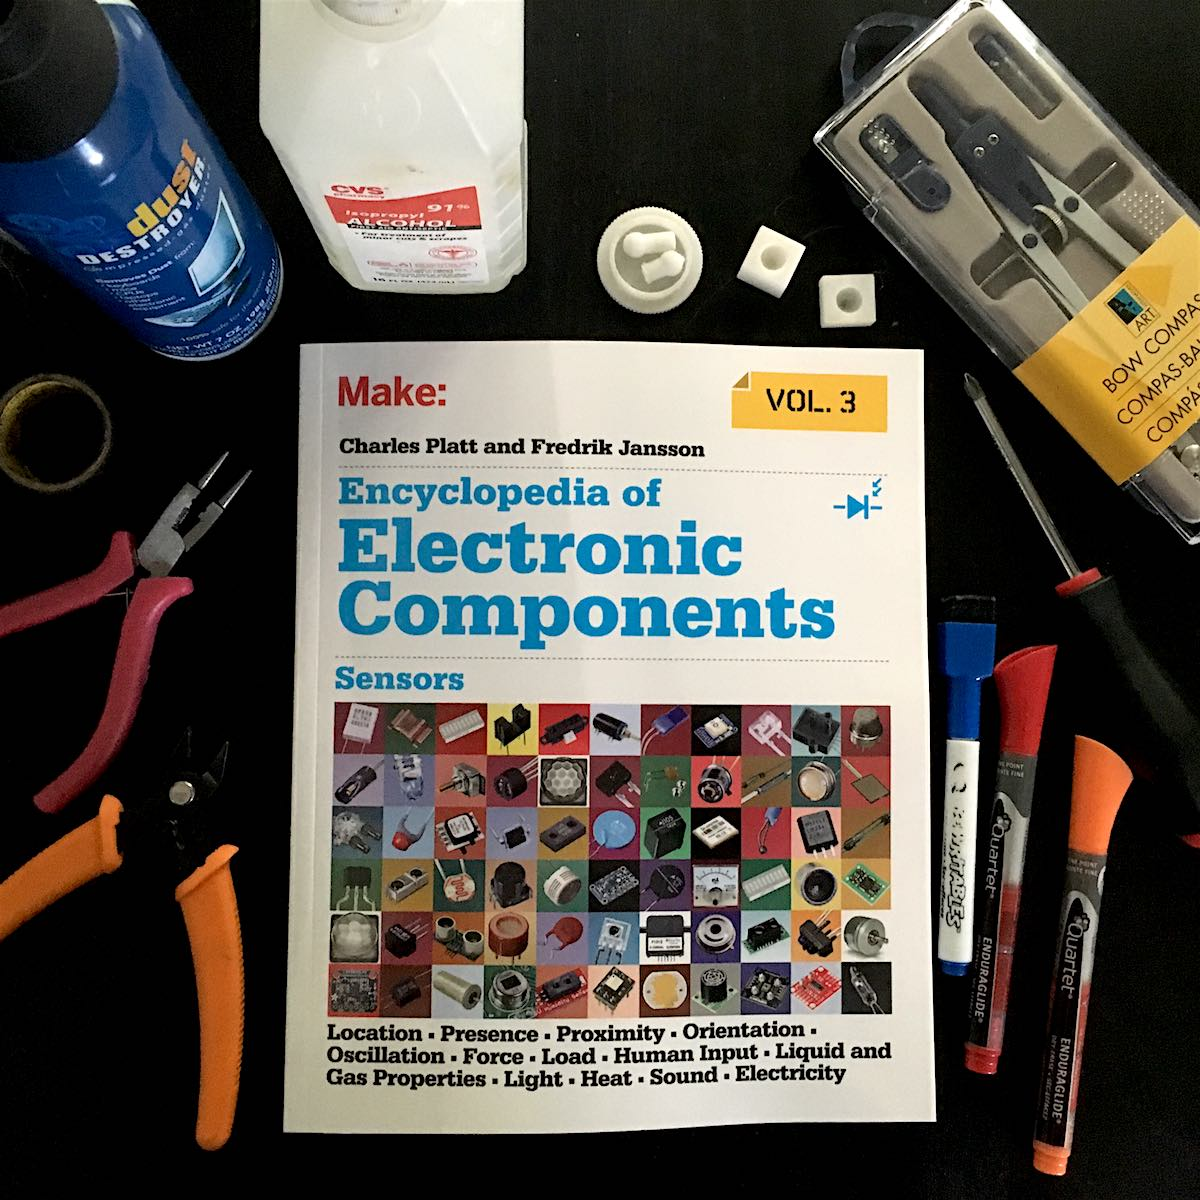 Sensors The Final Volume In An Impressive Series Of Electronics Electronic Components As Light Sensor Guides For 21st Century Makers